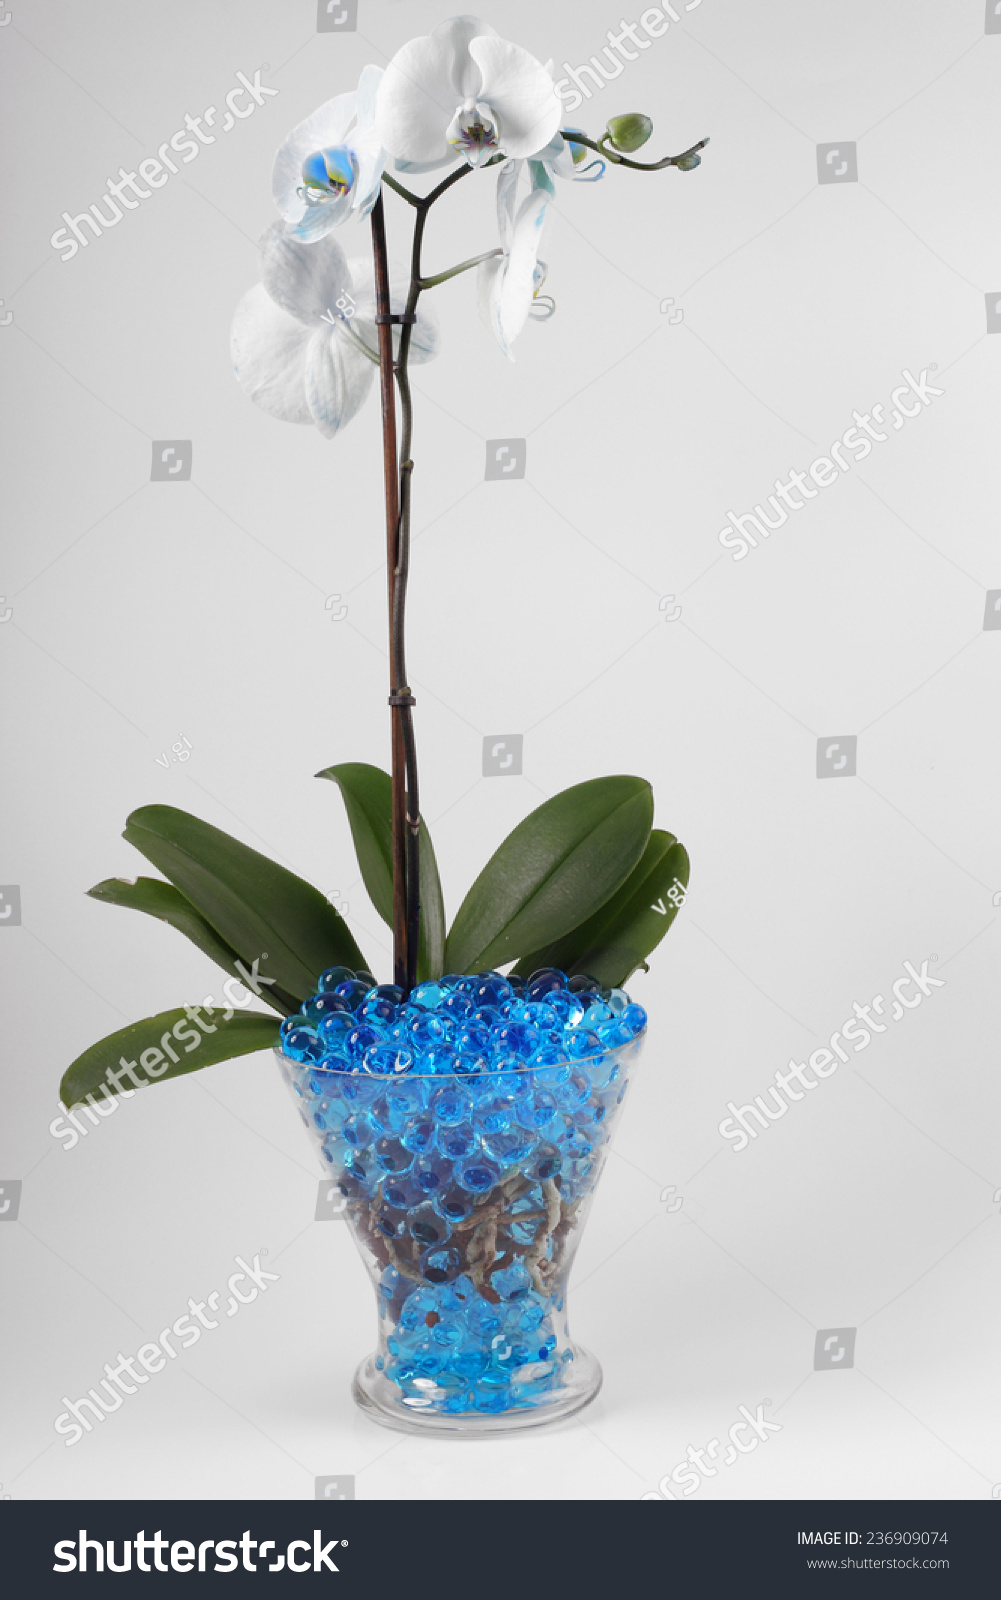 Beautiful flowers orchids vases hydrogel stock photo 236909074 beautiful flowers orchids in vases with hydrogel reviewsmspy